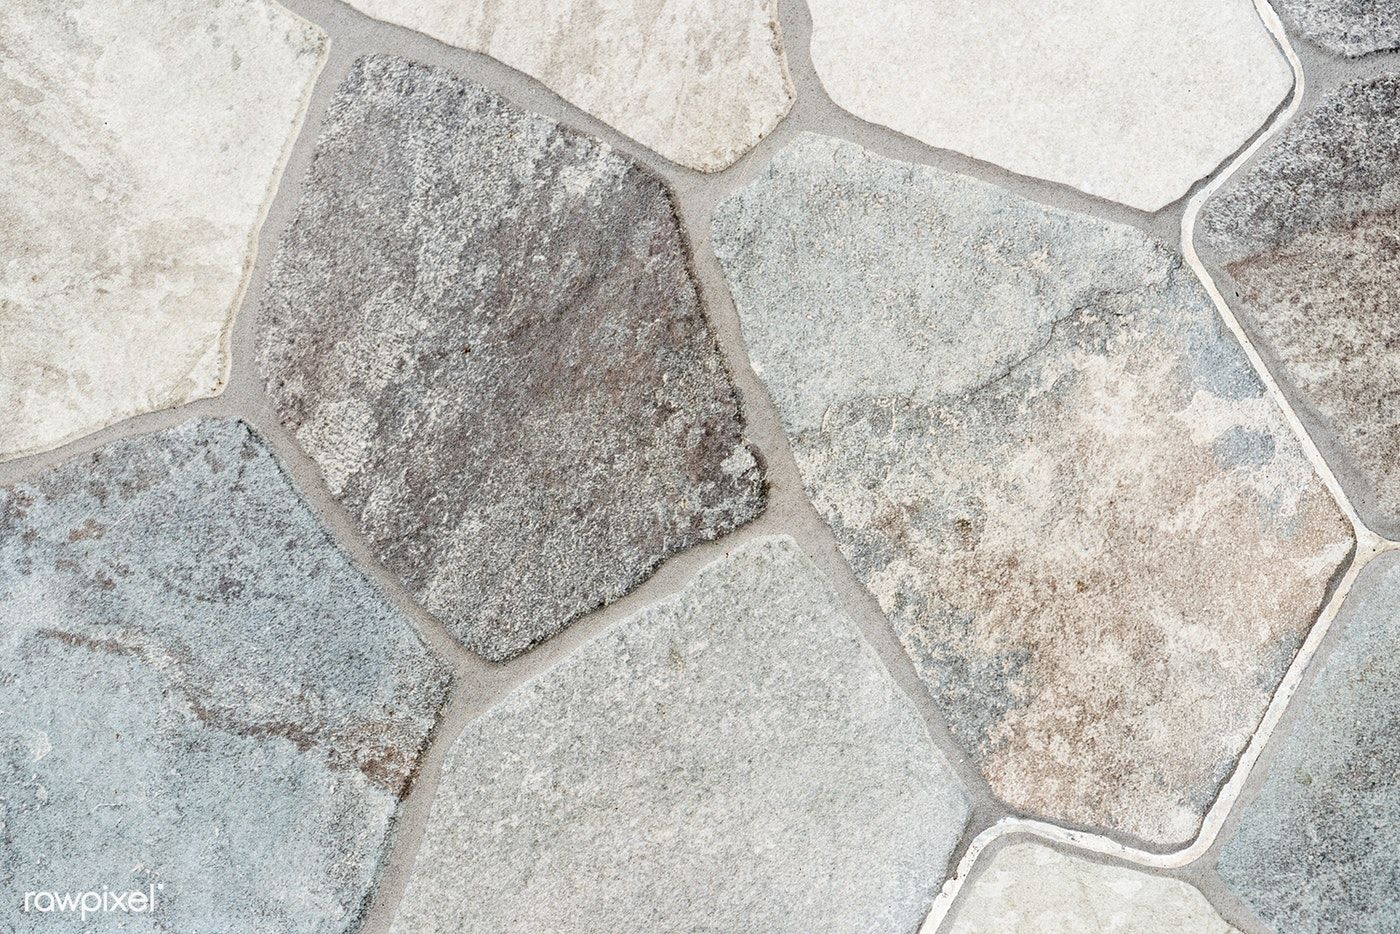 Tiles Textured Background Free Image By Rawpixel Com Tiles Texture Natural Stone Wall Textured Background